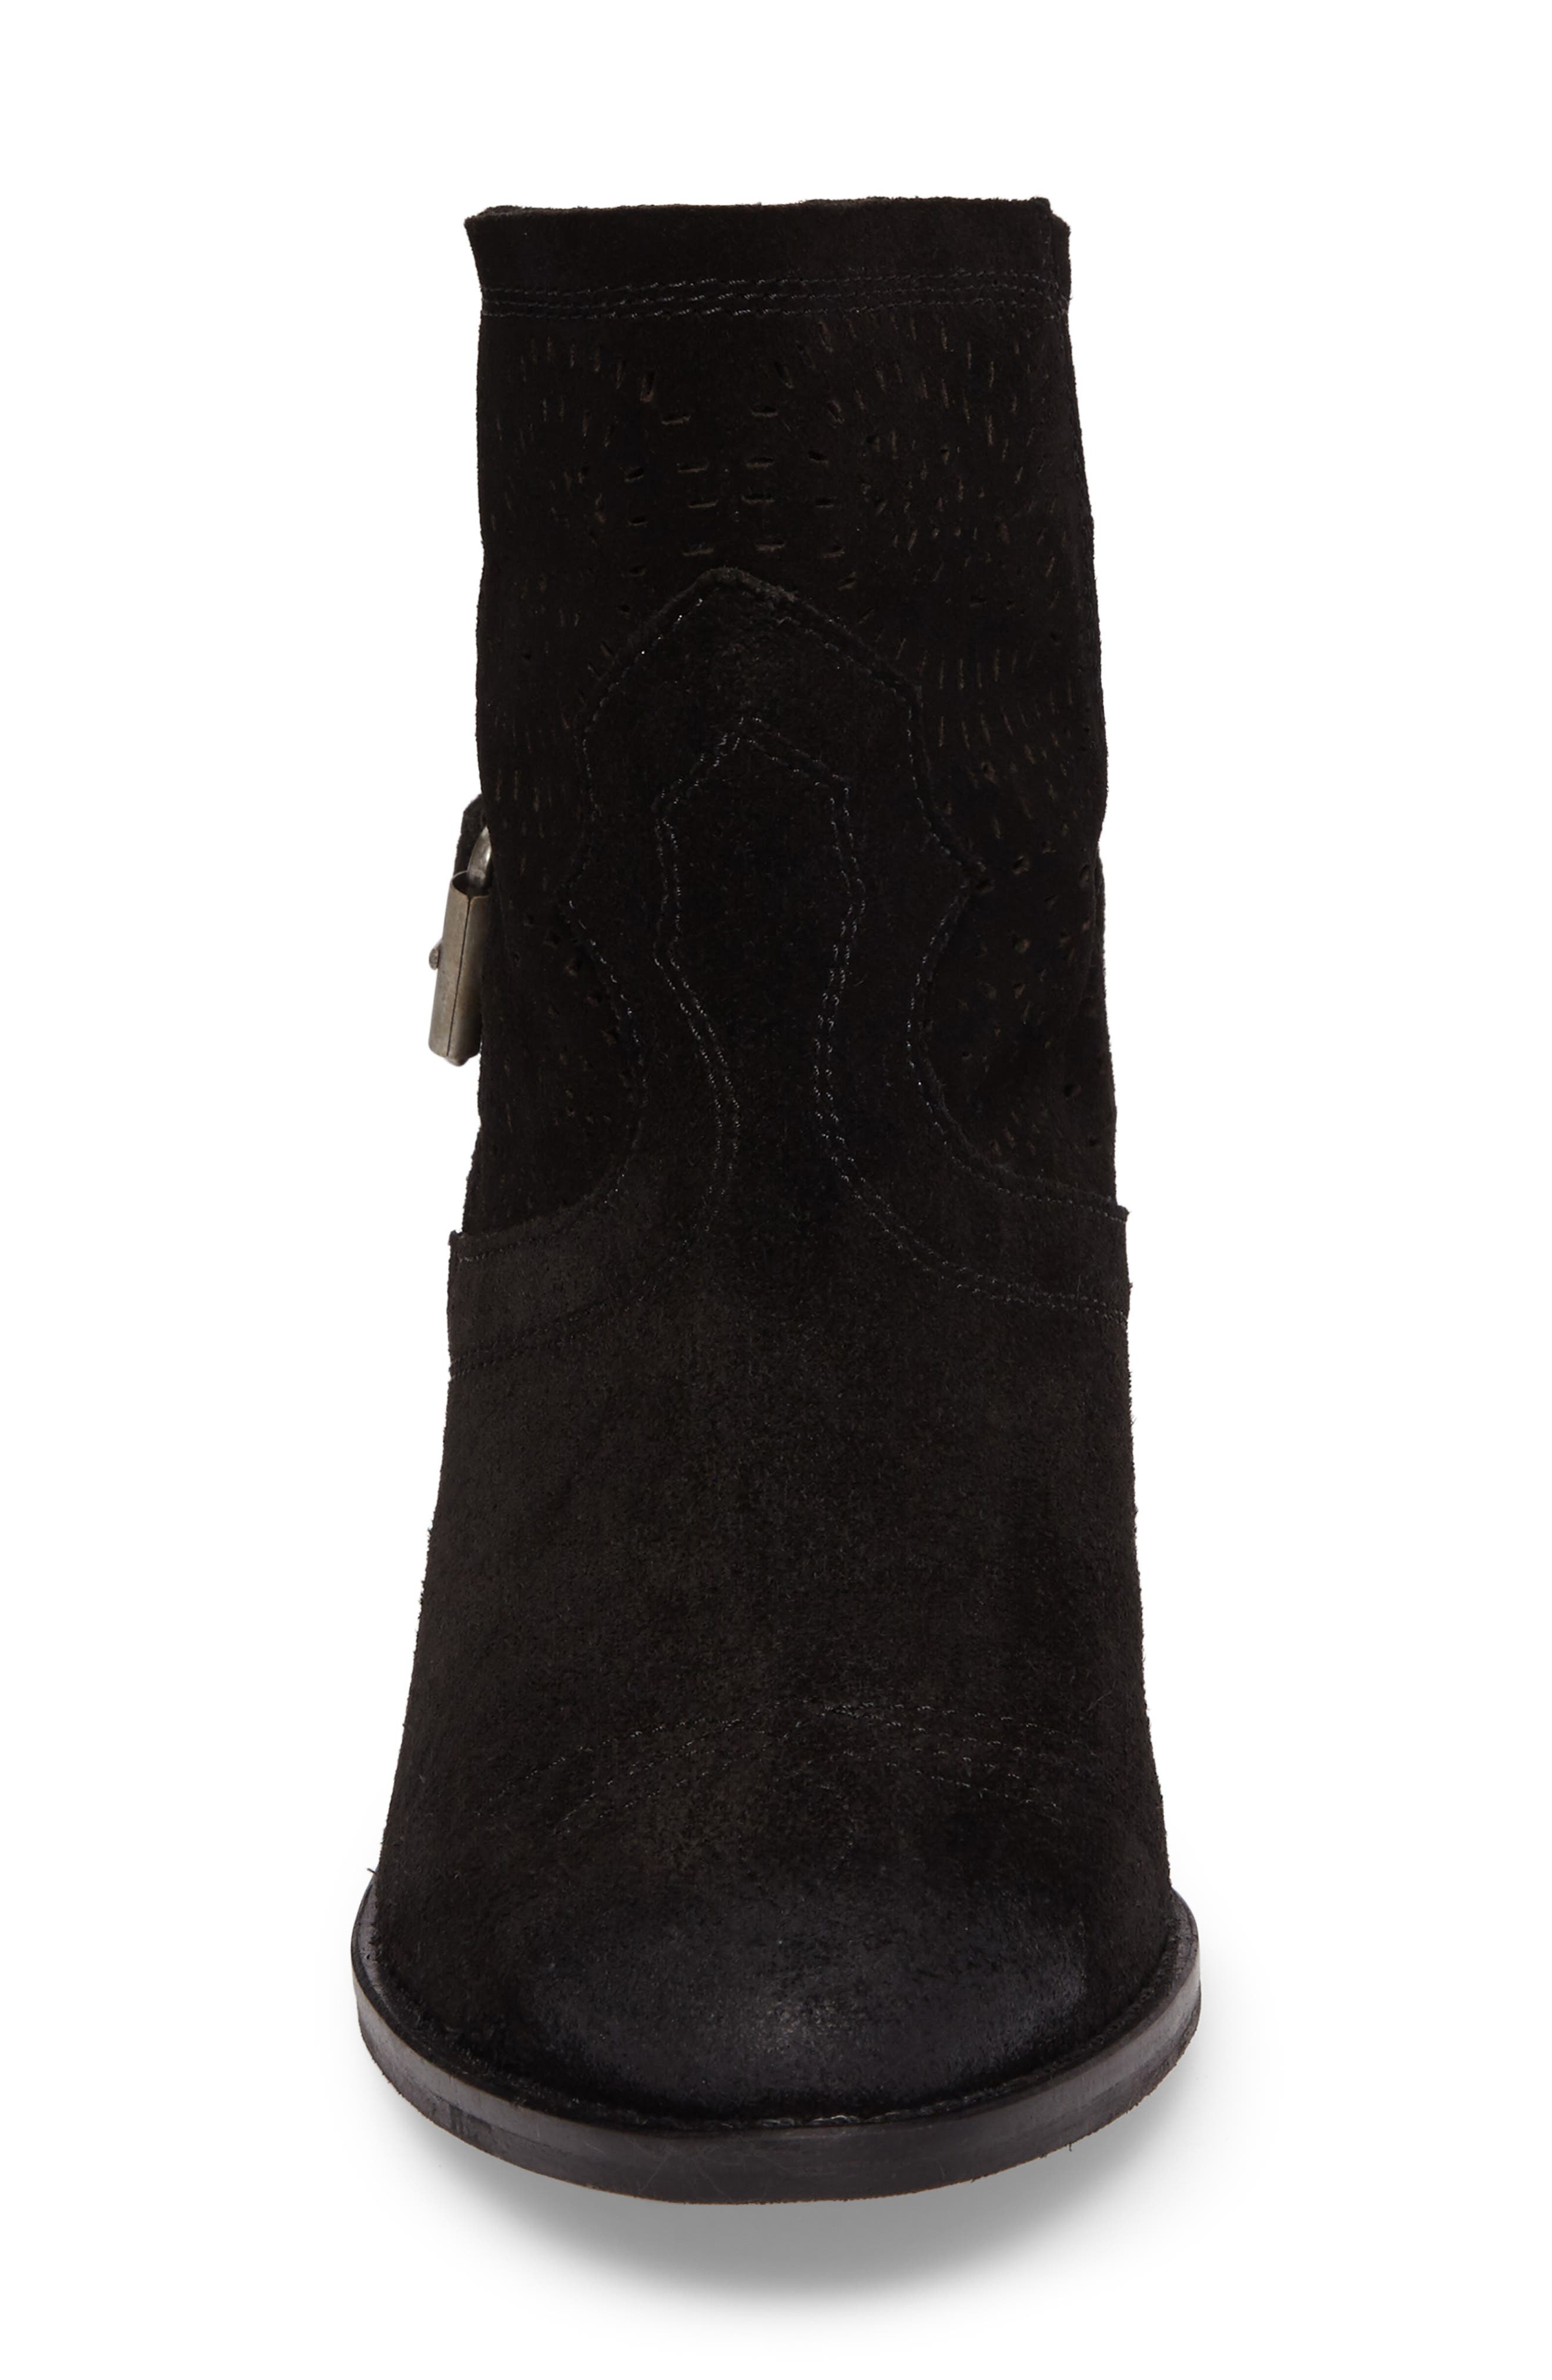 Zoey Perforated Bootie,                             Alternate thumbnail 4, color,                             001